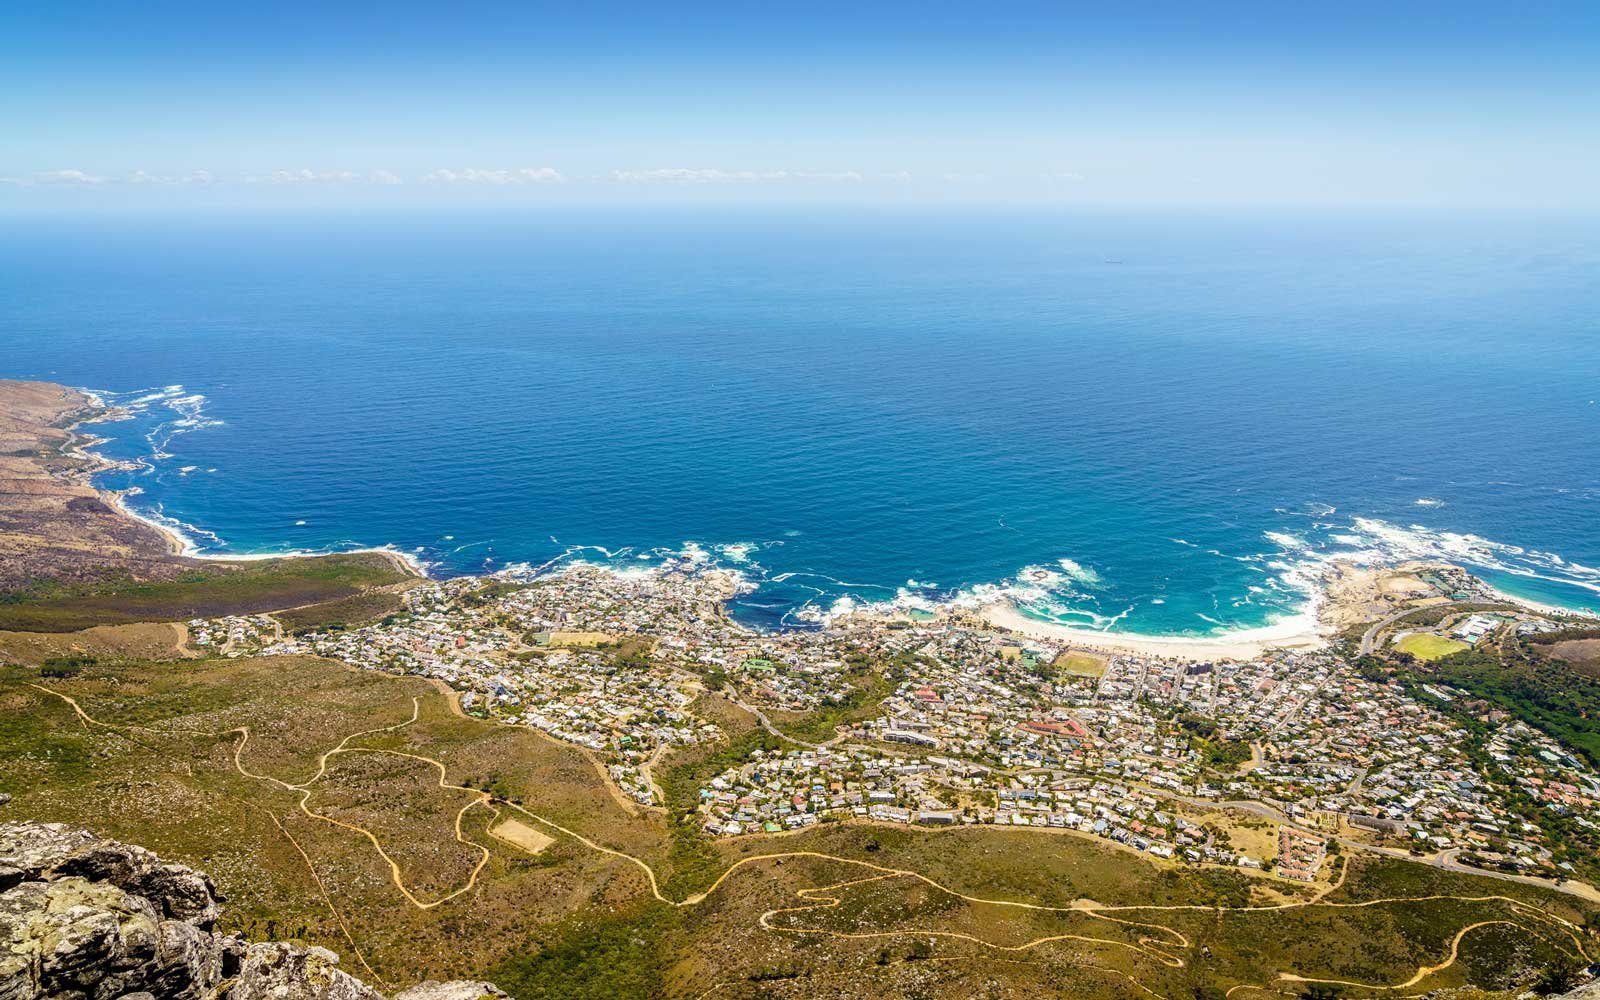 Aerial view of Camps Bay in Cape Town, South Africa